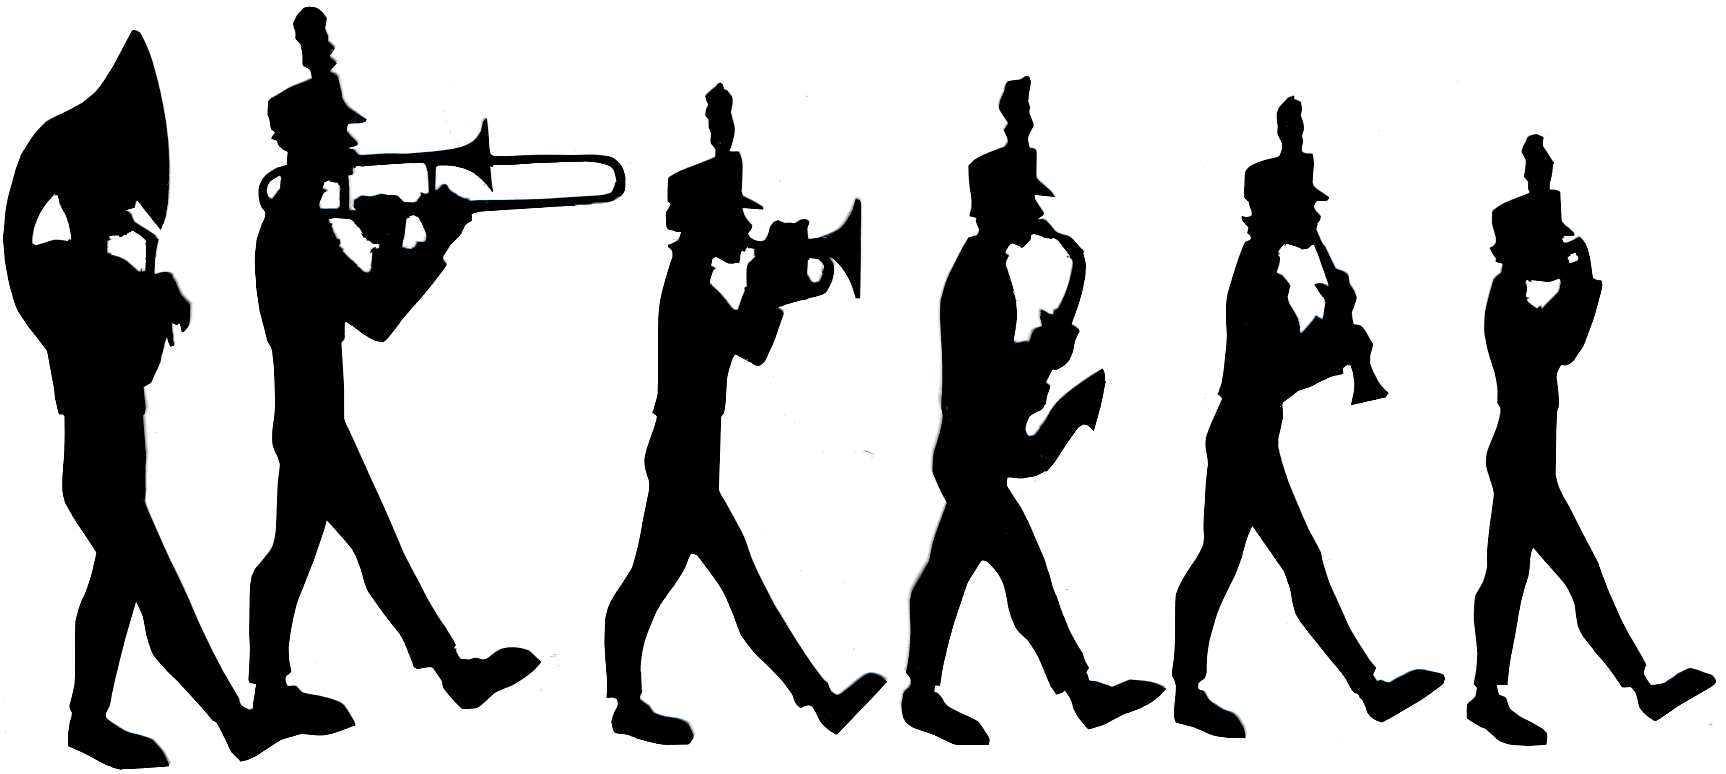 Marching Band Saxophone Silhouette-Marching Band Saxophone Silhouette-12